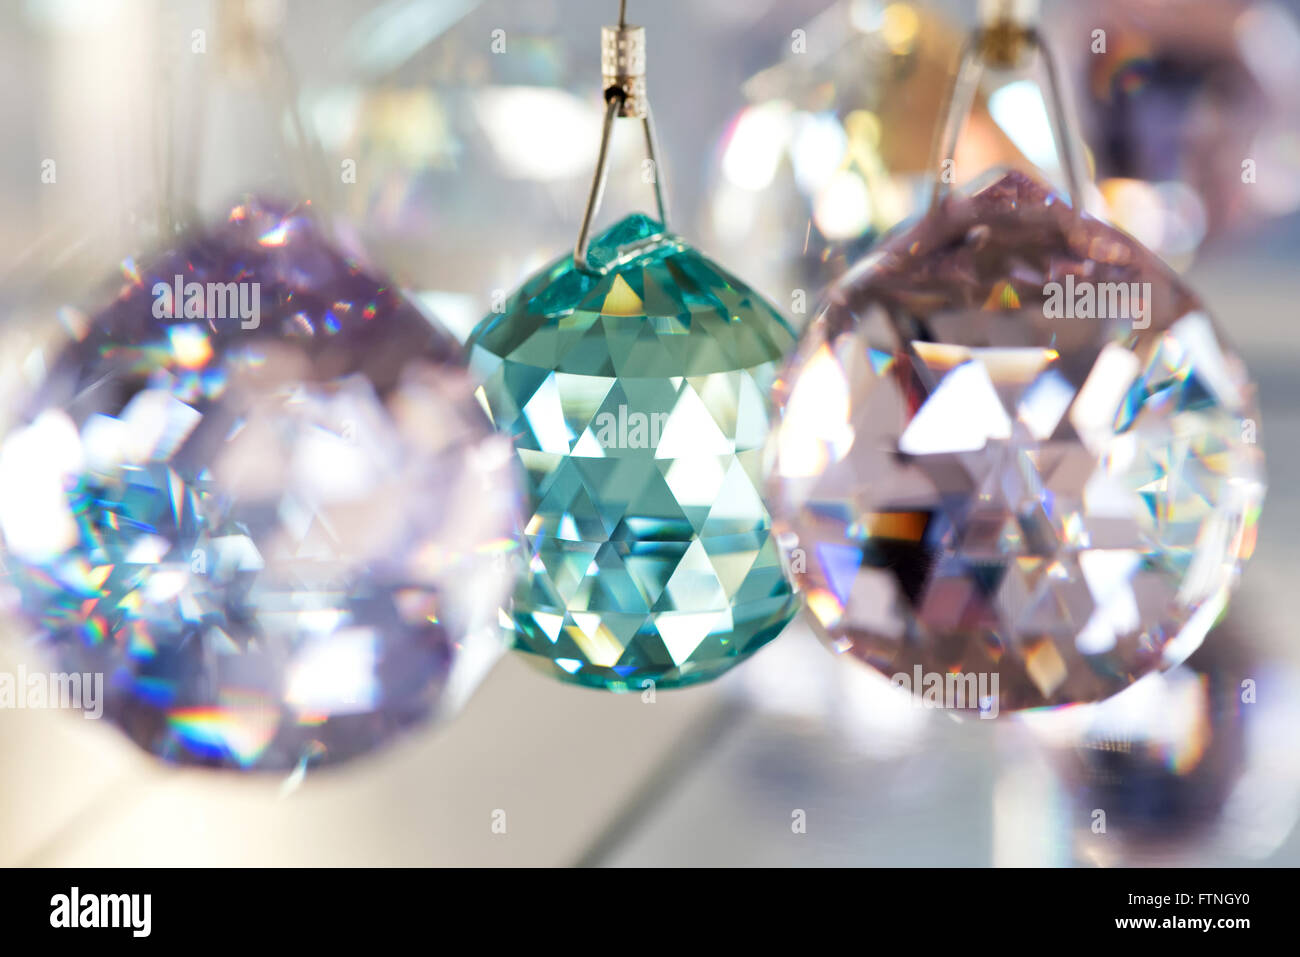 Faceted crystal ball decorations in lilac and blue hanging in a store, close up detailed view with focus to the - Stock Image